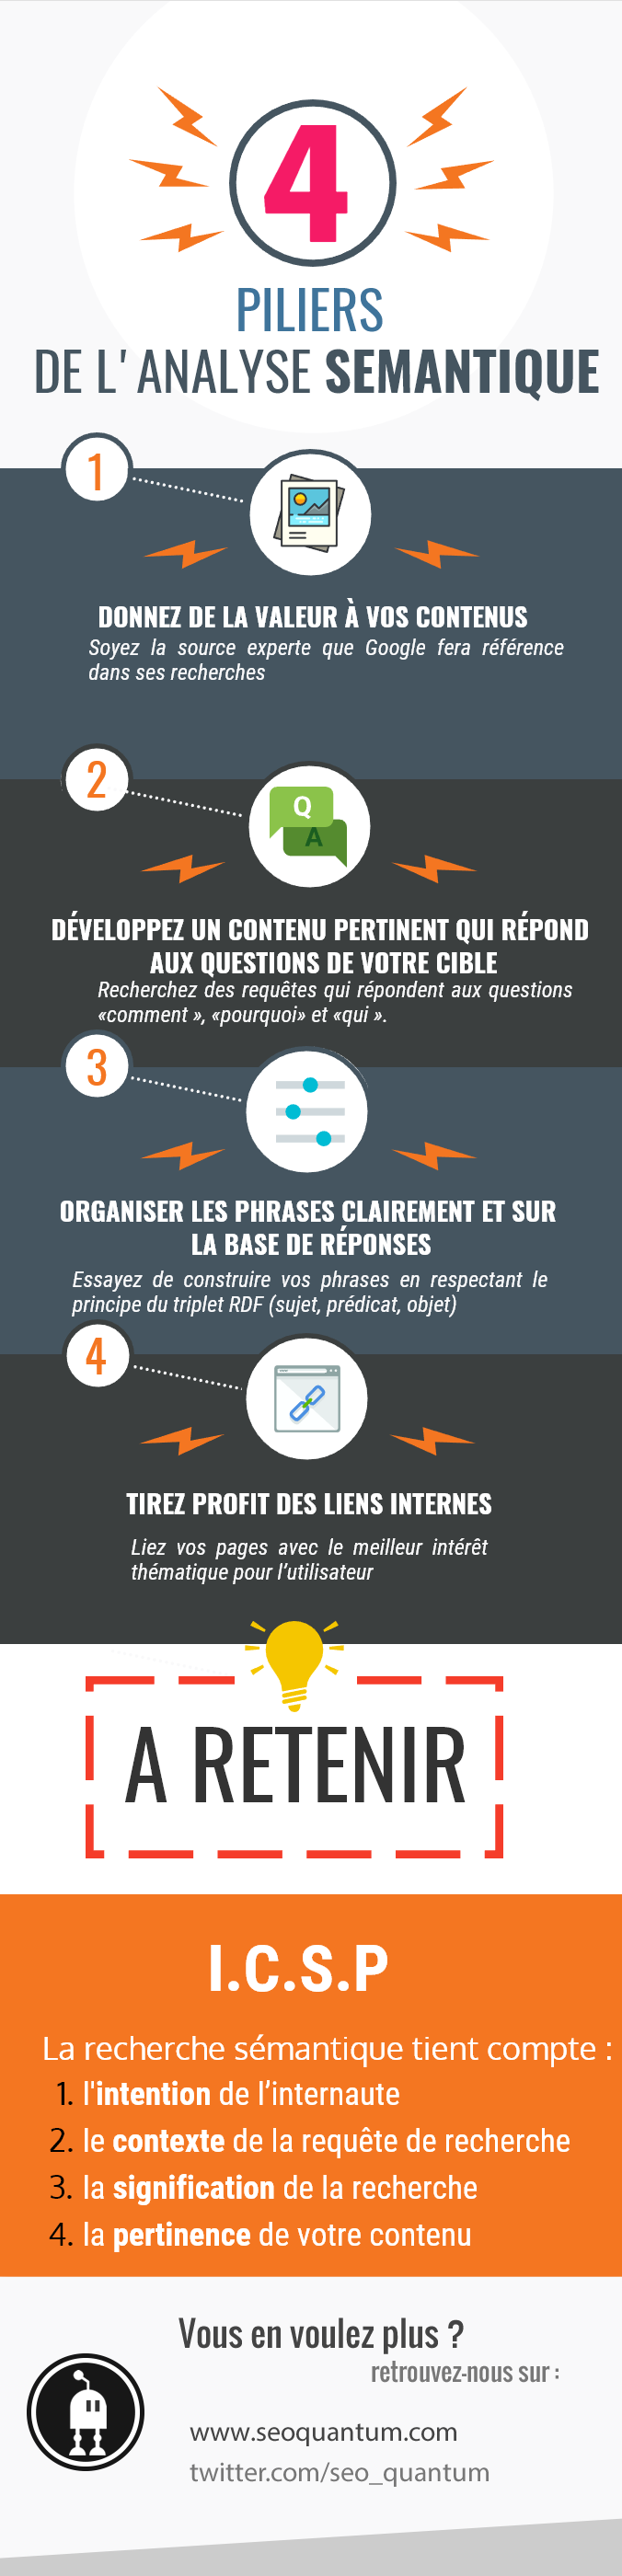 infographie-analyse-semantique